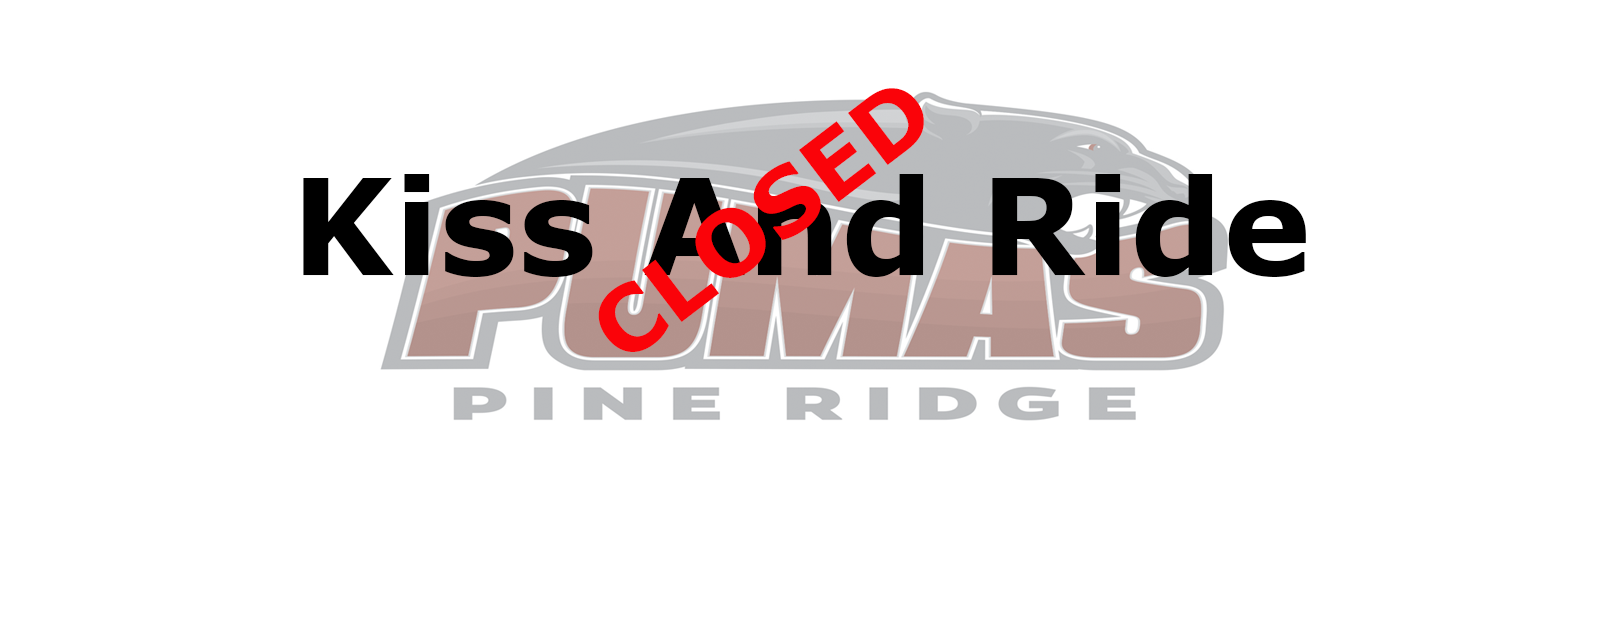 Kiss And Ride Closed